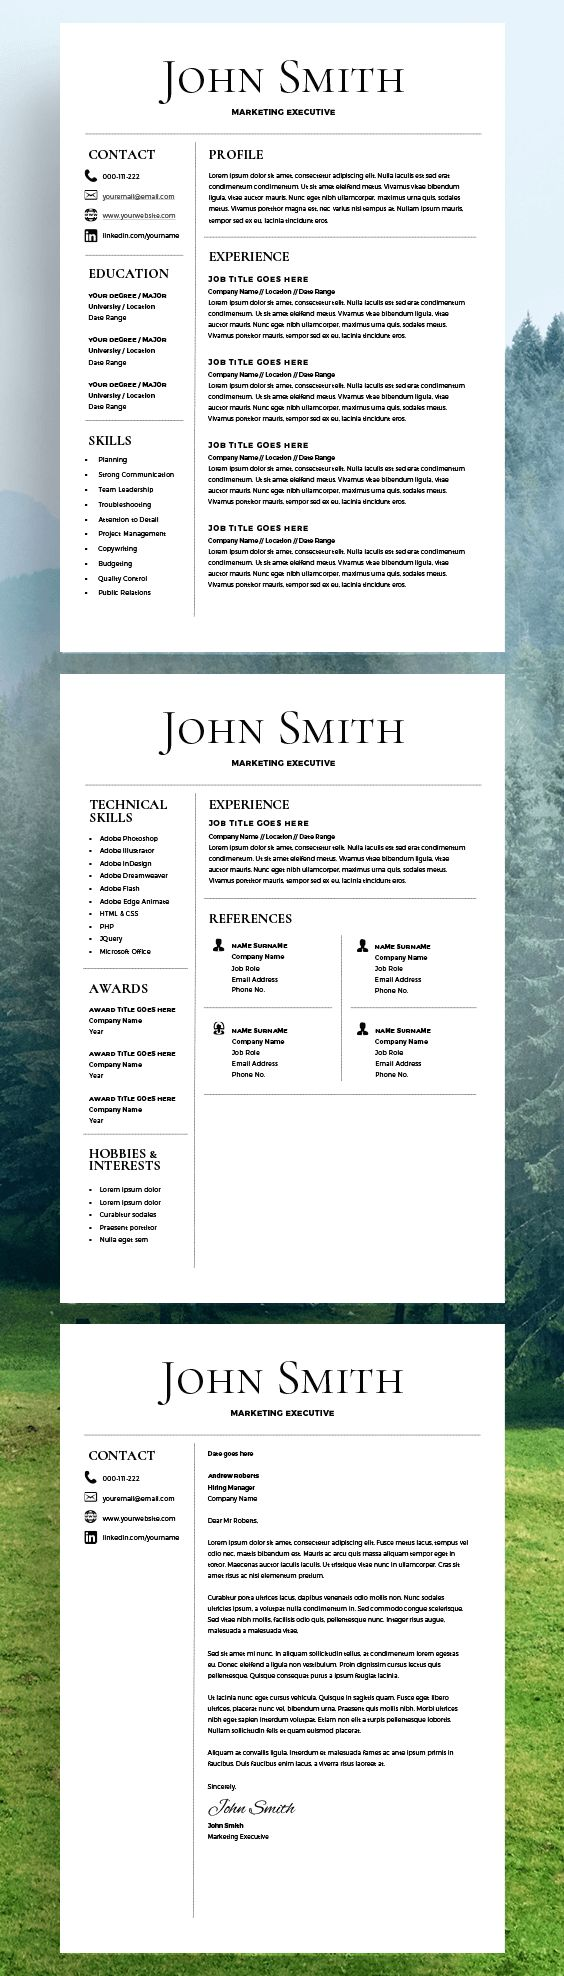 resume template cv template free cover letter ms word on mac pc - Word For Mac Resume Templates